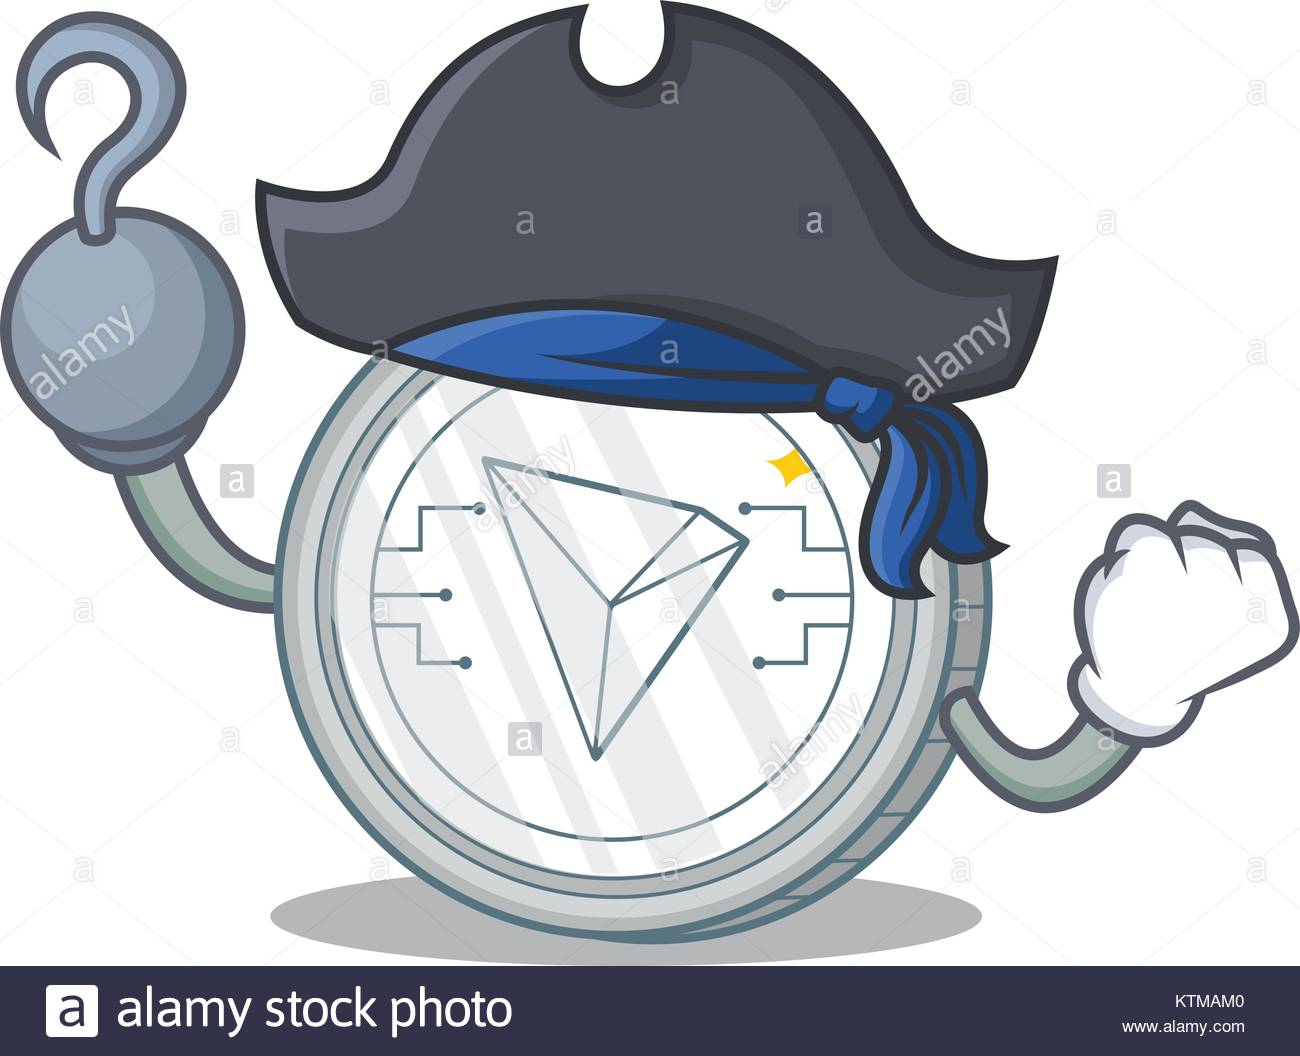 Pirate Tron coin character cartoon - Stock Image